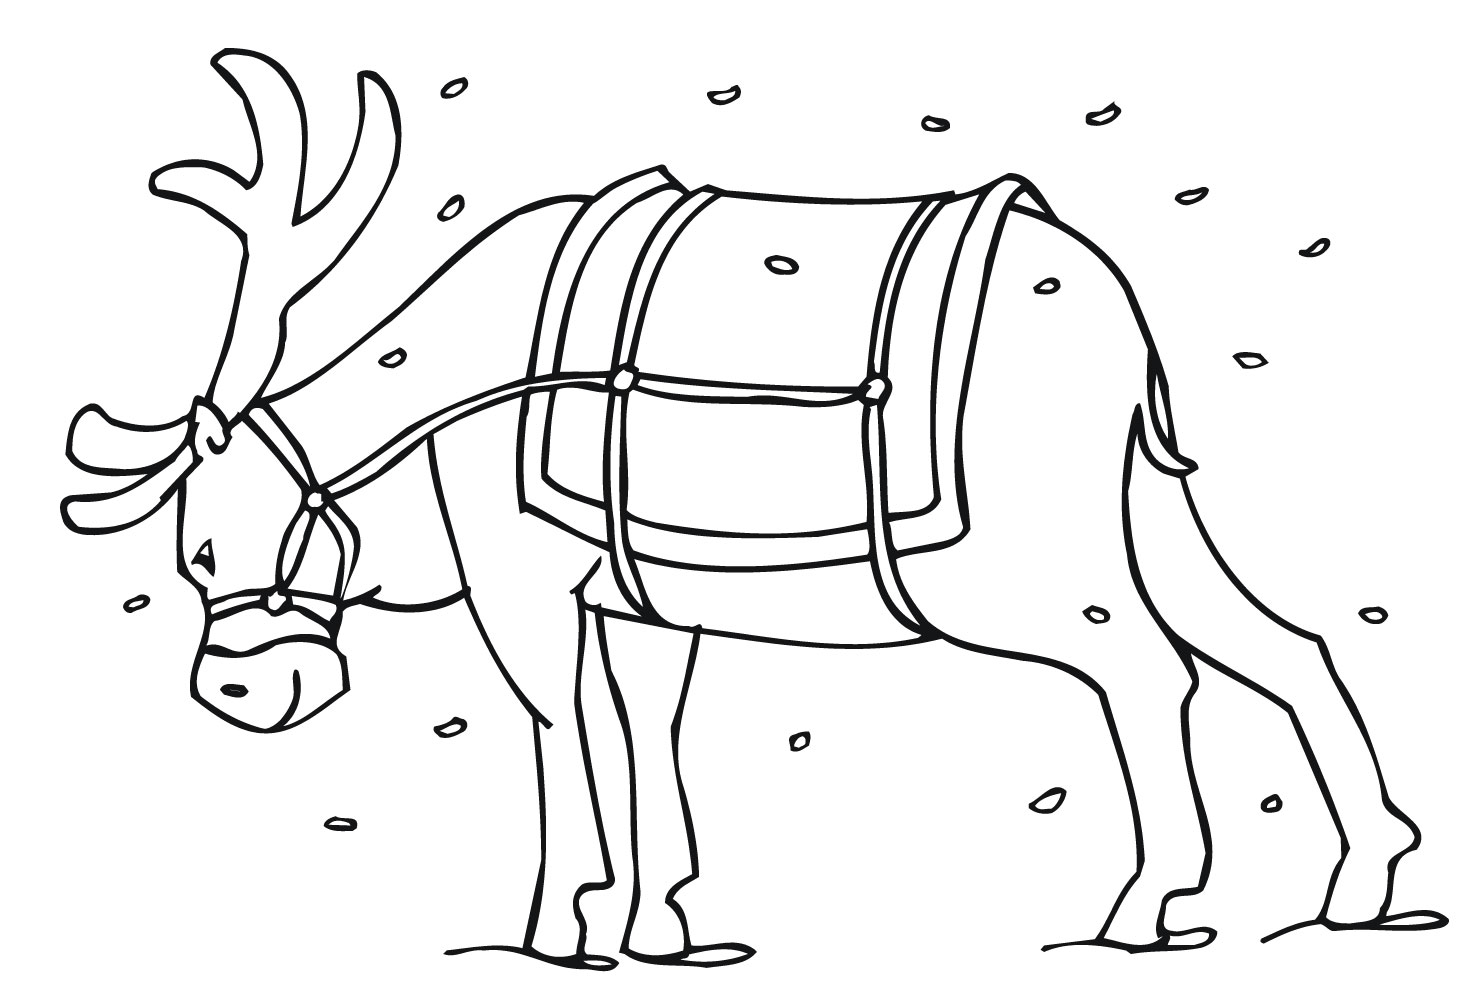 coloring pages reindeer mini - photo#26